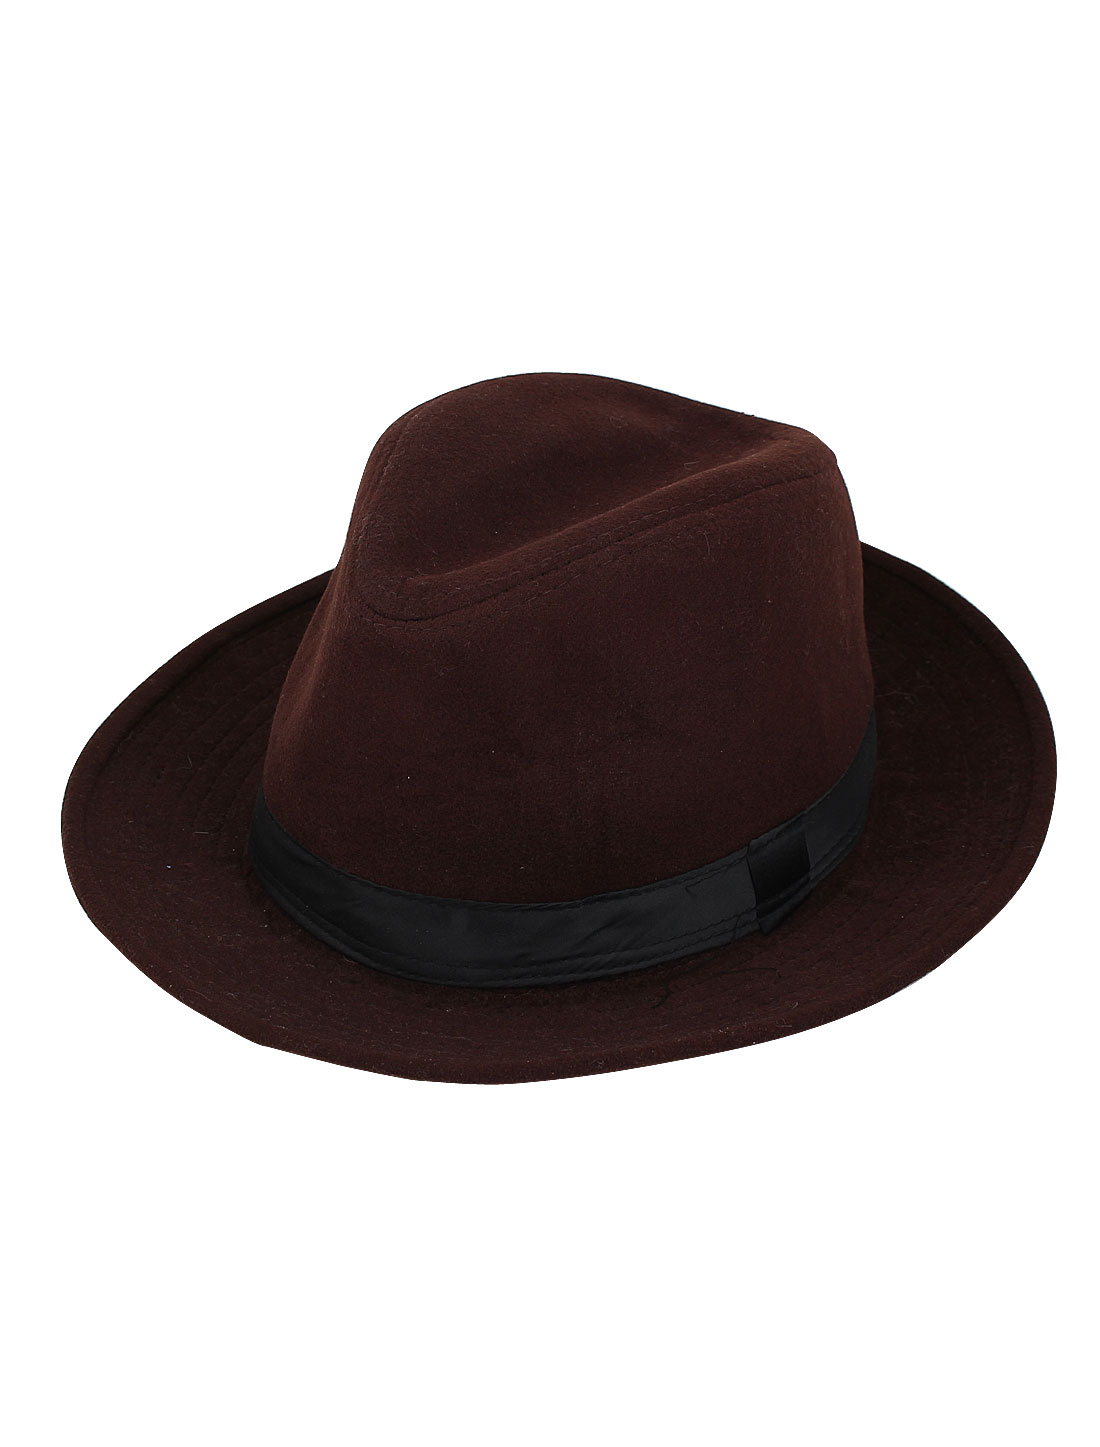 Unisex Cotton Blends Travel Party Fedora Jazz Top Hat Cap Coffee Color